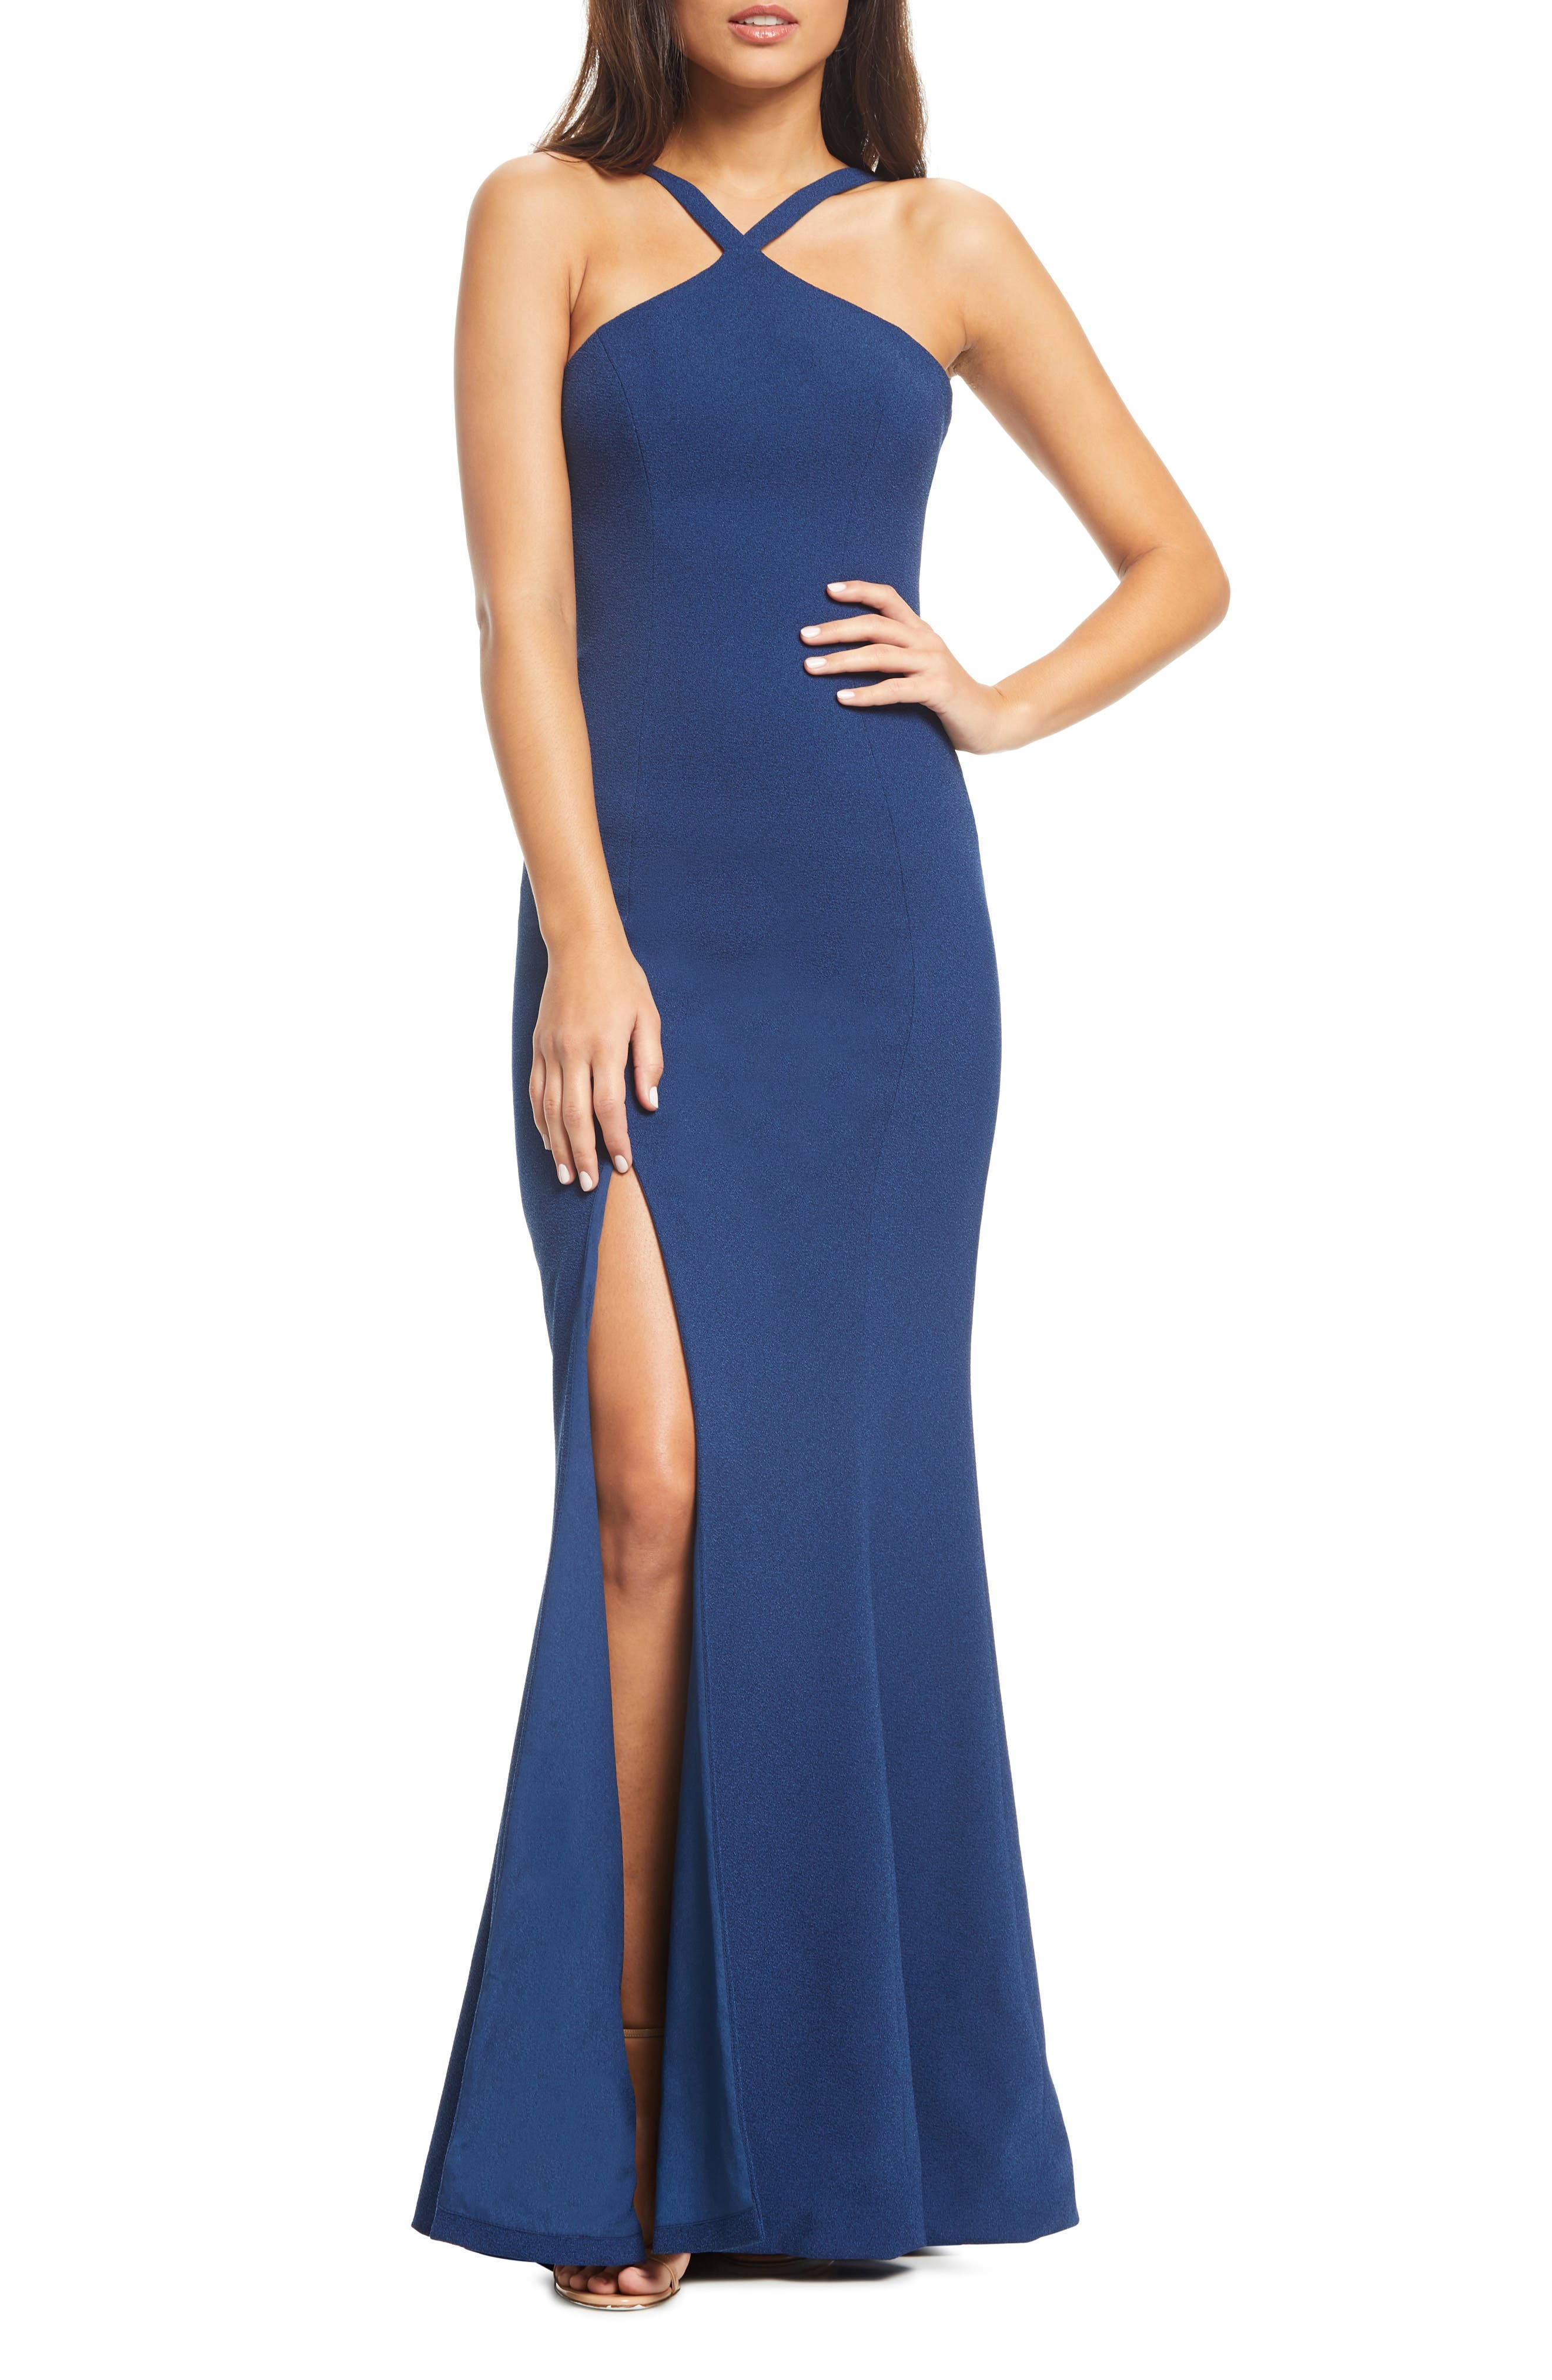 DRESS THE POPULATION,                             Brianna Halter Style Trumpet Gown,                             Main thumbnail 1, color,                             PACIFIC